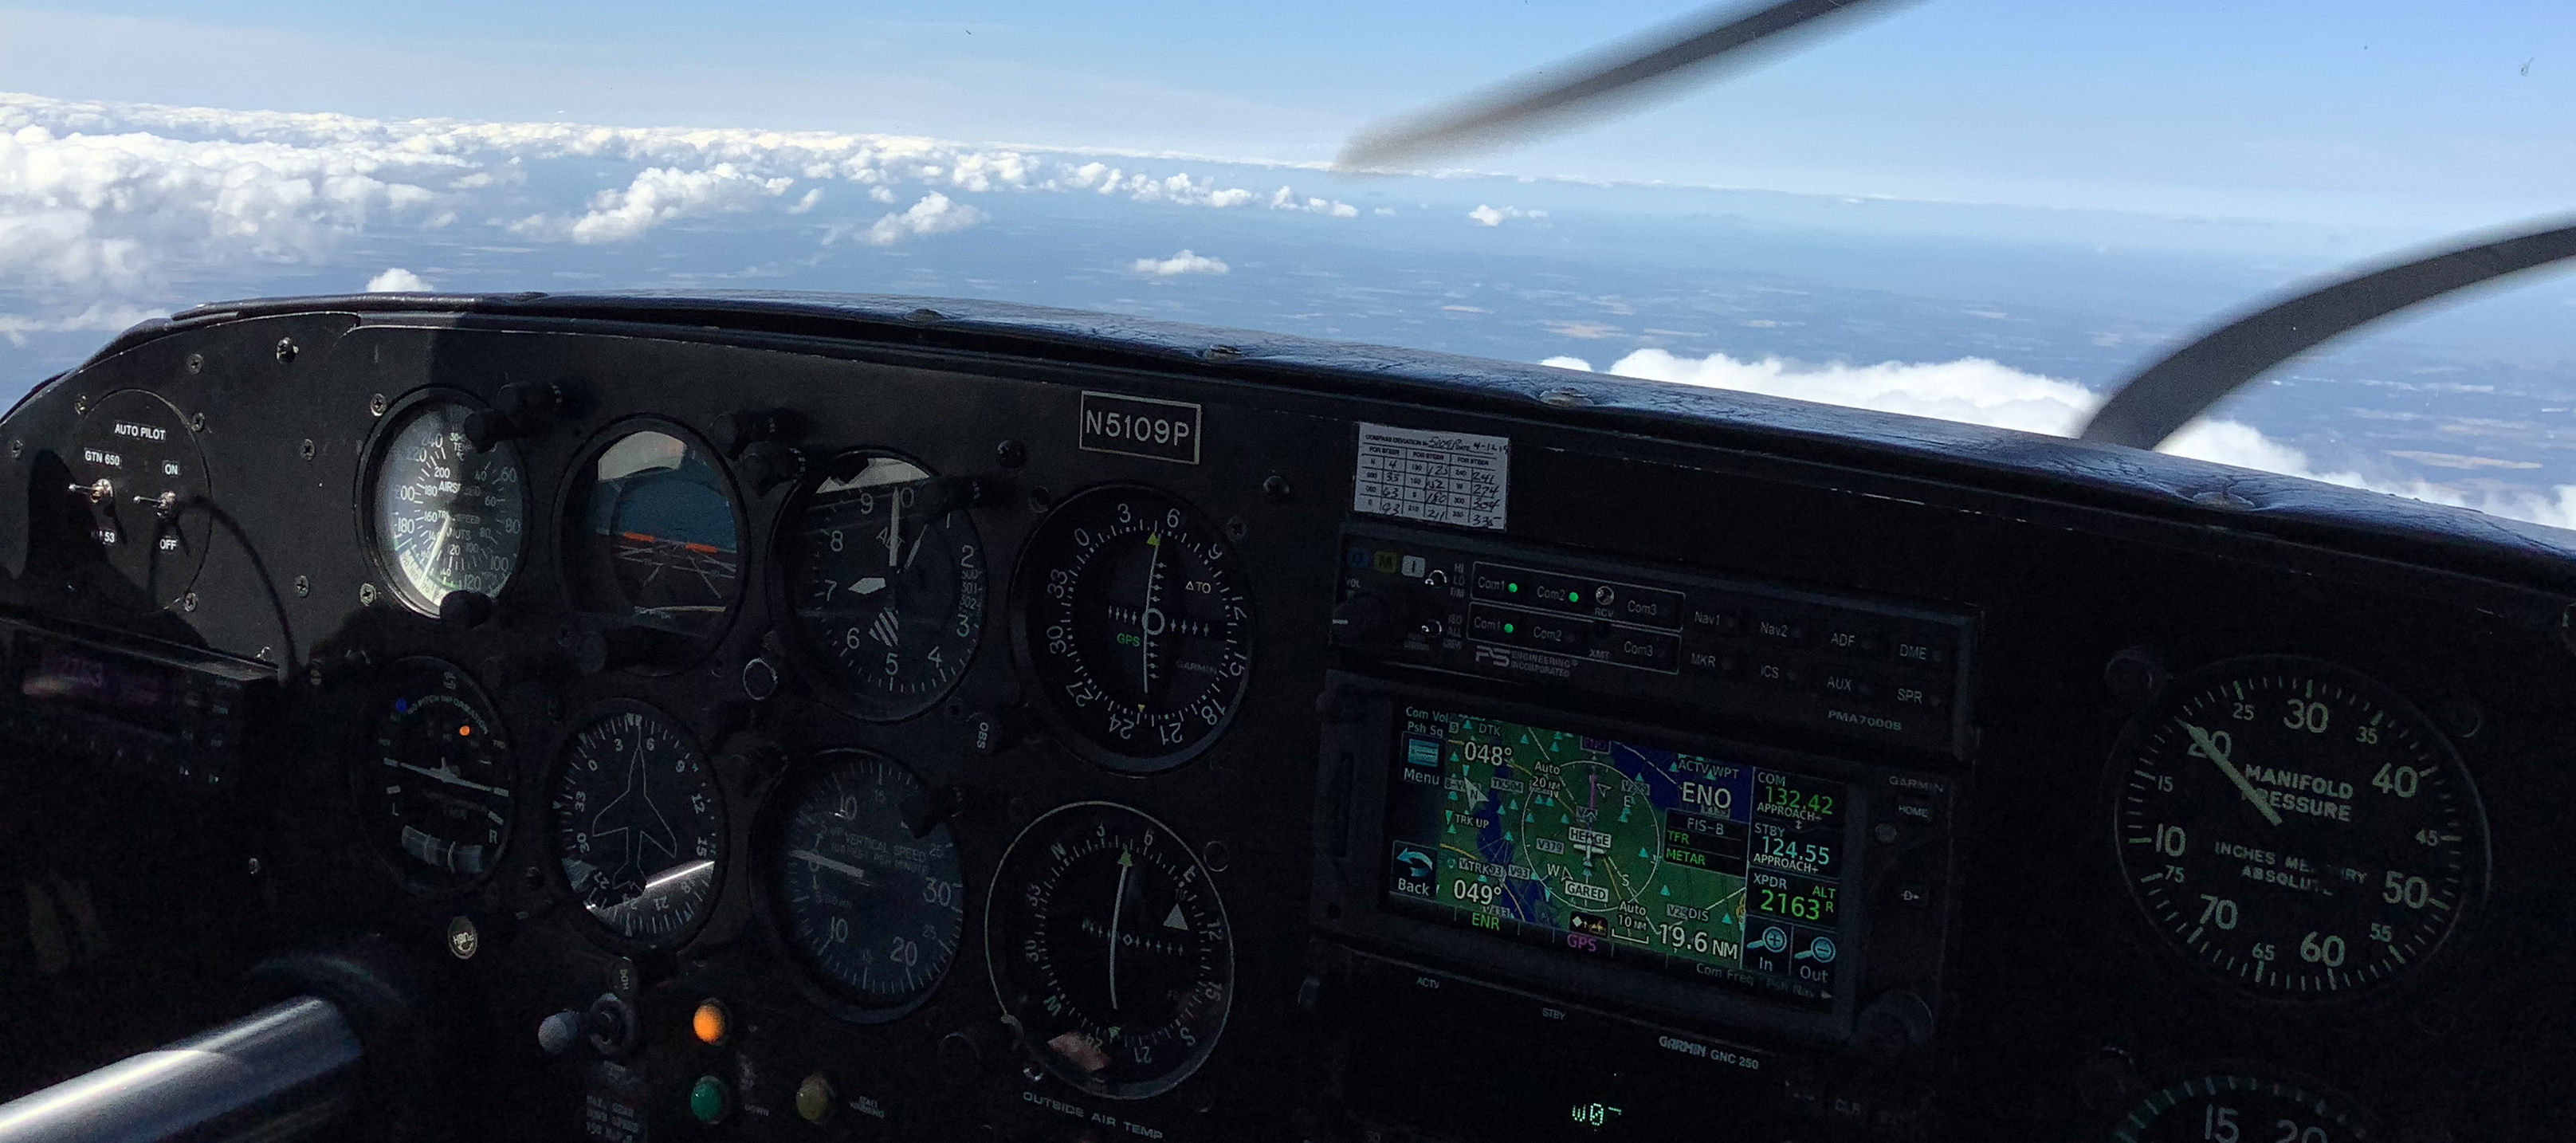 Cockpit of a Piper Comanche 250